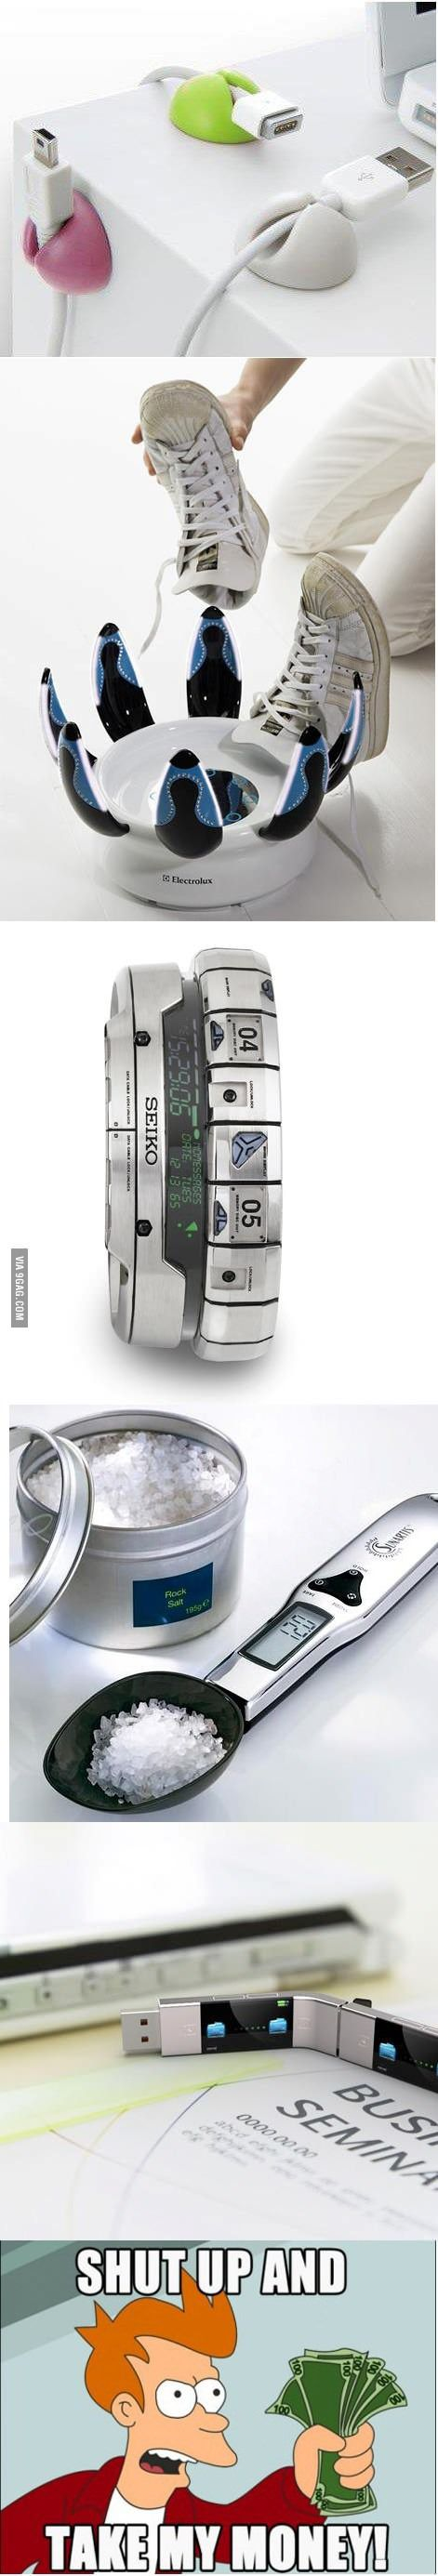 shut up and take my money amazing inventions